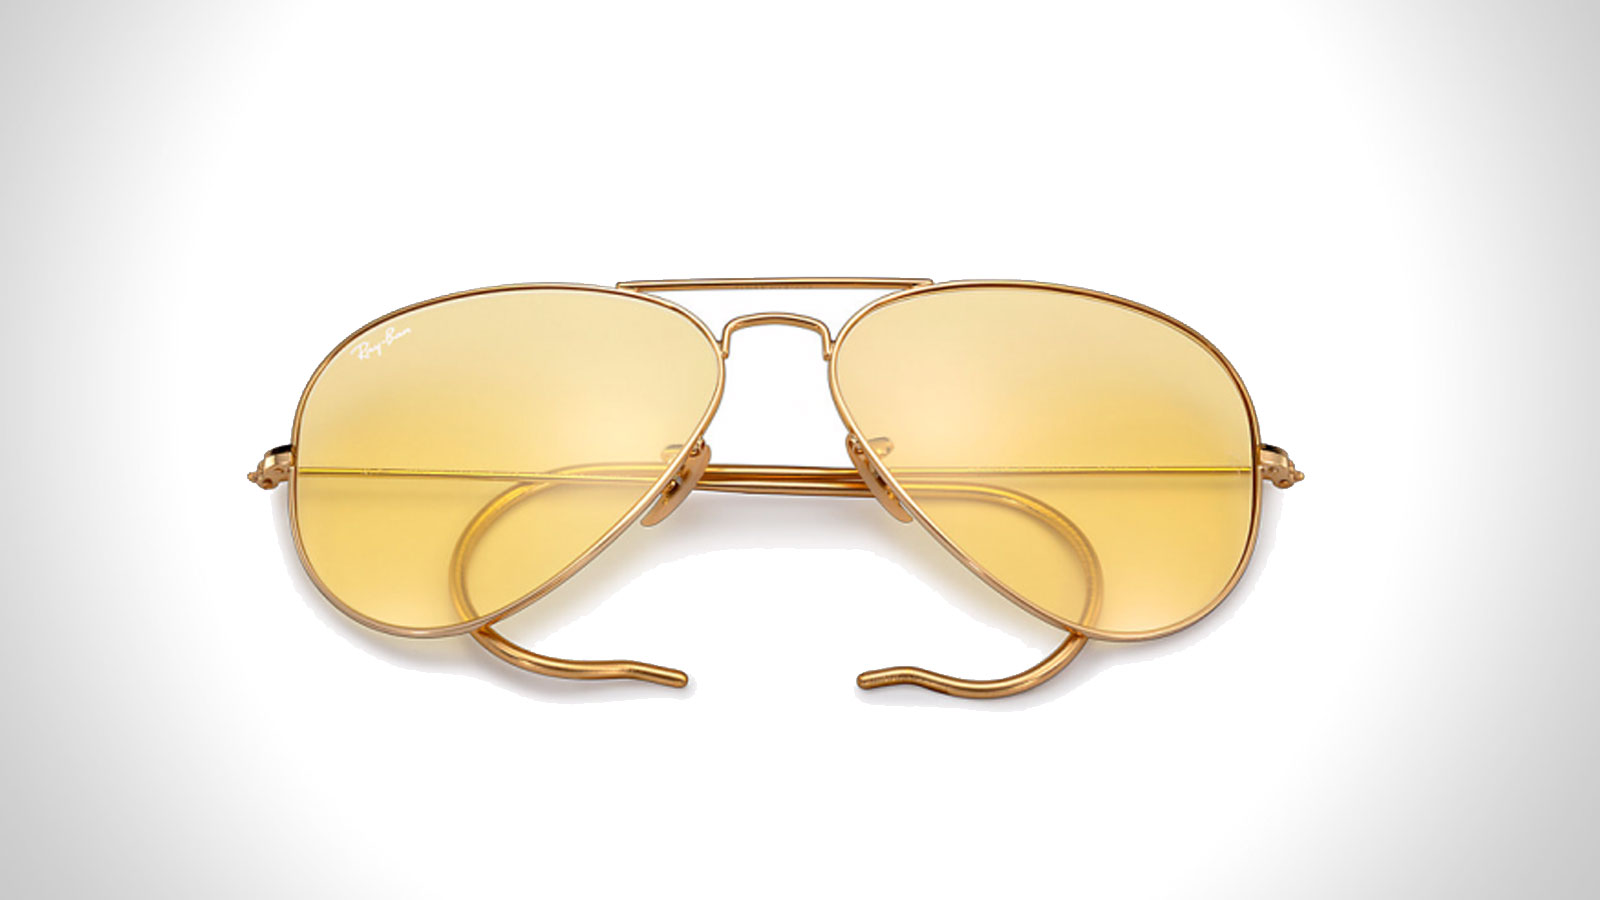 RAY-BAN AMBERMATIC AVIATOR SUNGLASSES